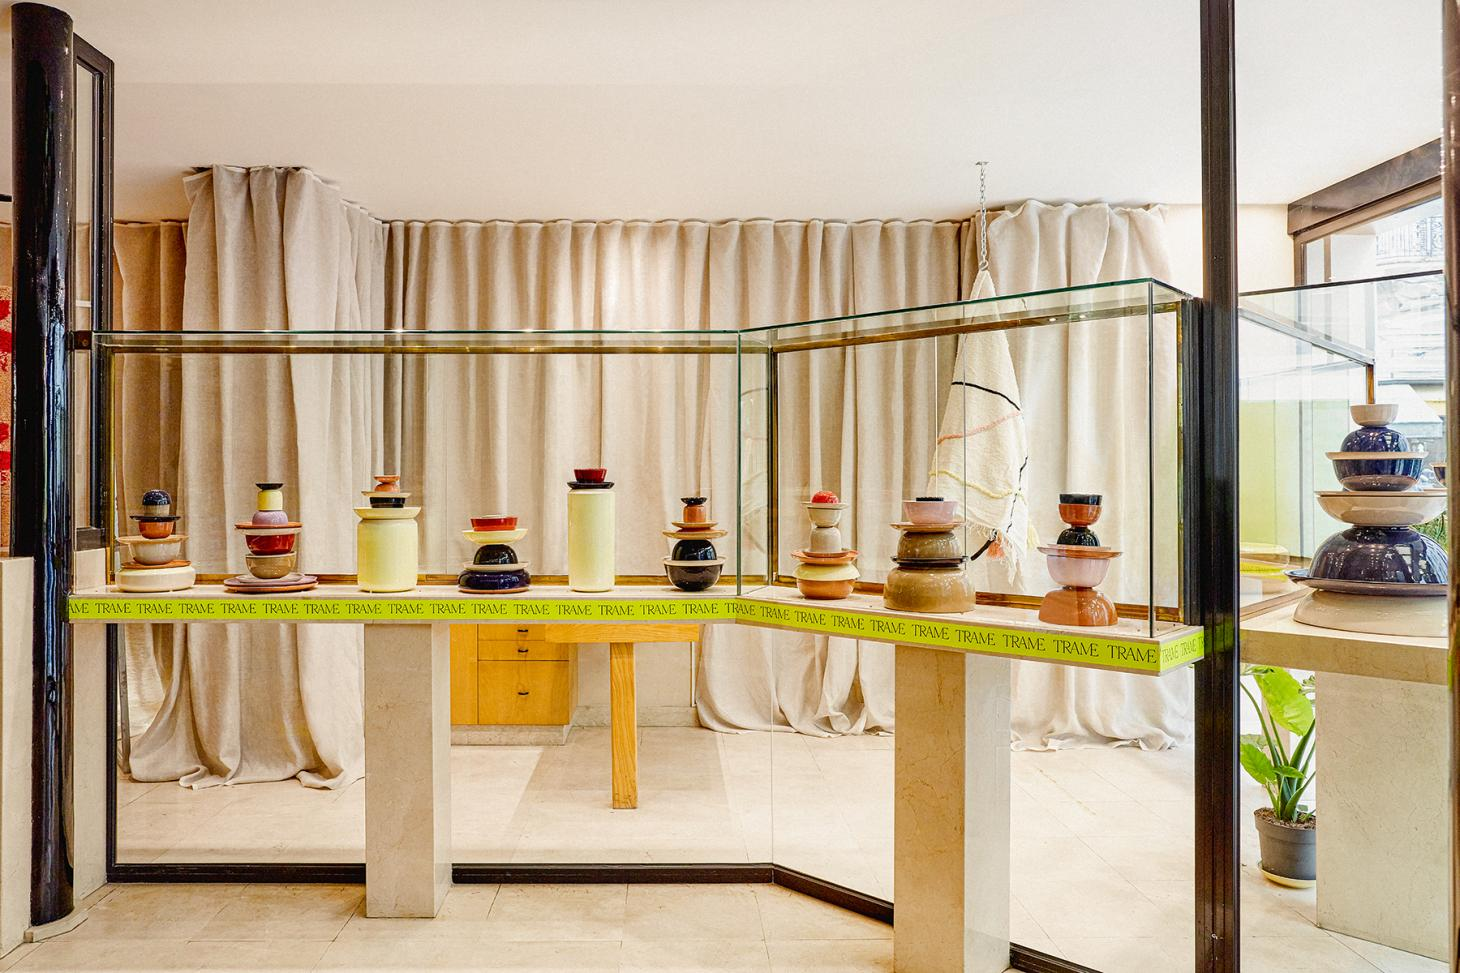 The interior of Paris store Trame, featuring a canvas curtain on the wall and a marble and wooden display structure with stacks of ceramic vessels in different colours